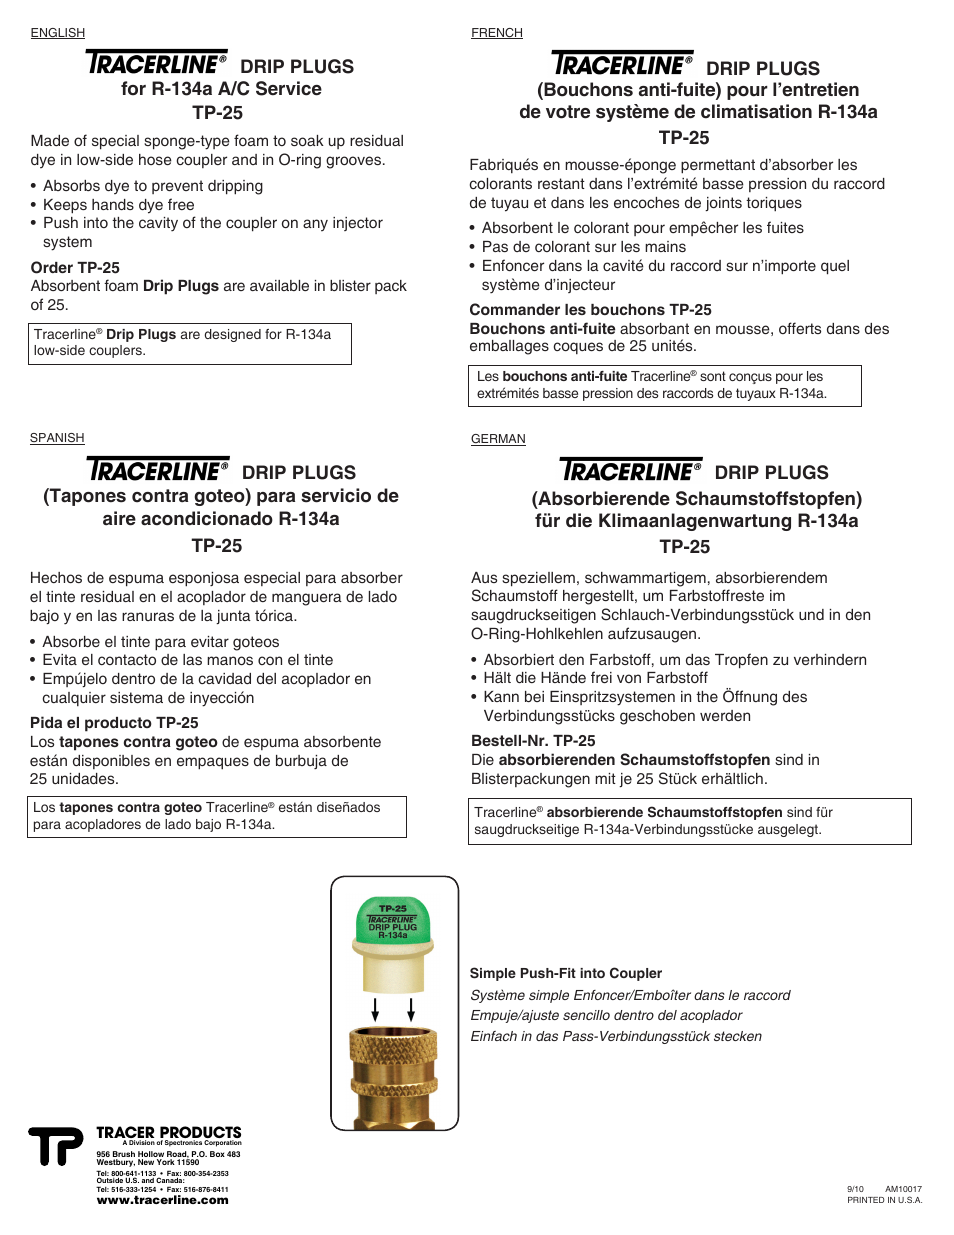 Tracer Drip Plugs TP-25 Tracerline M-L AM10017 User Manual   1 page ...